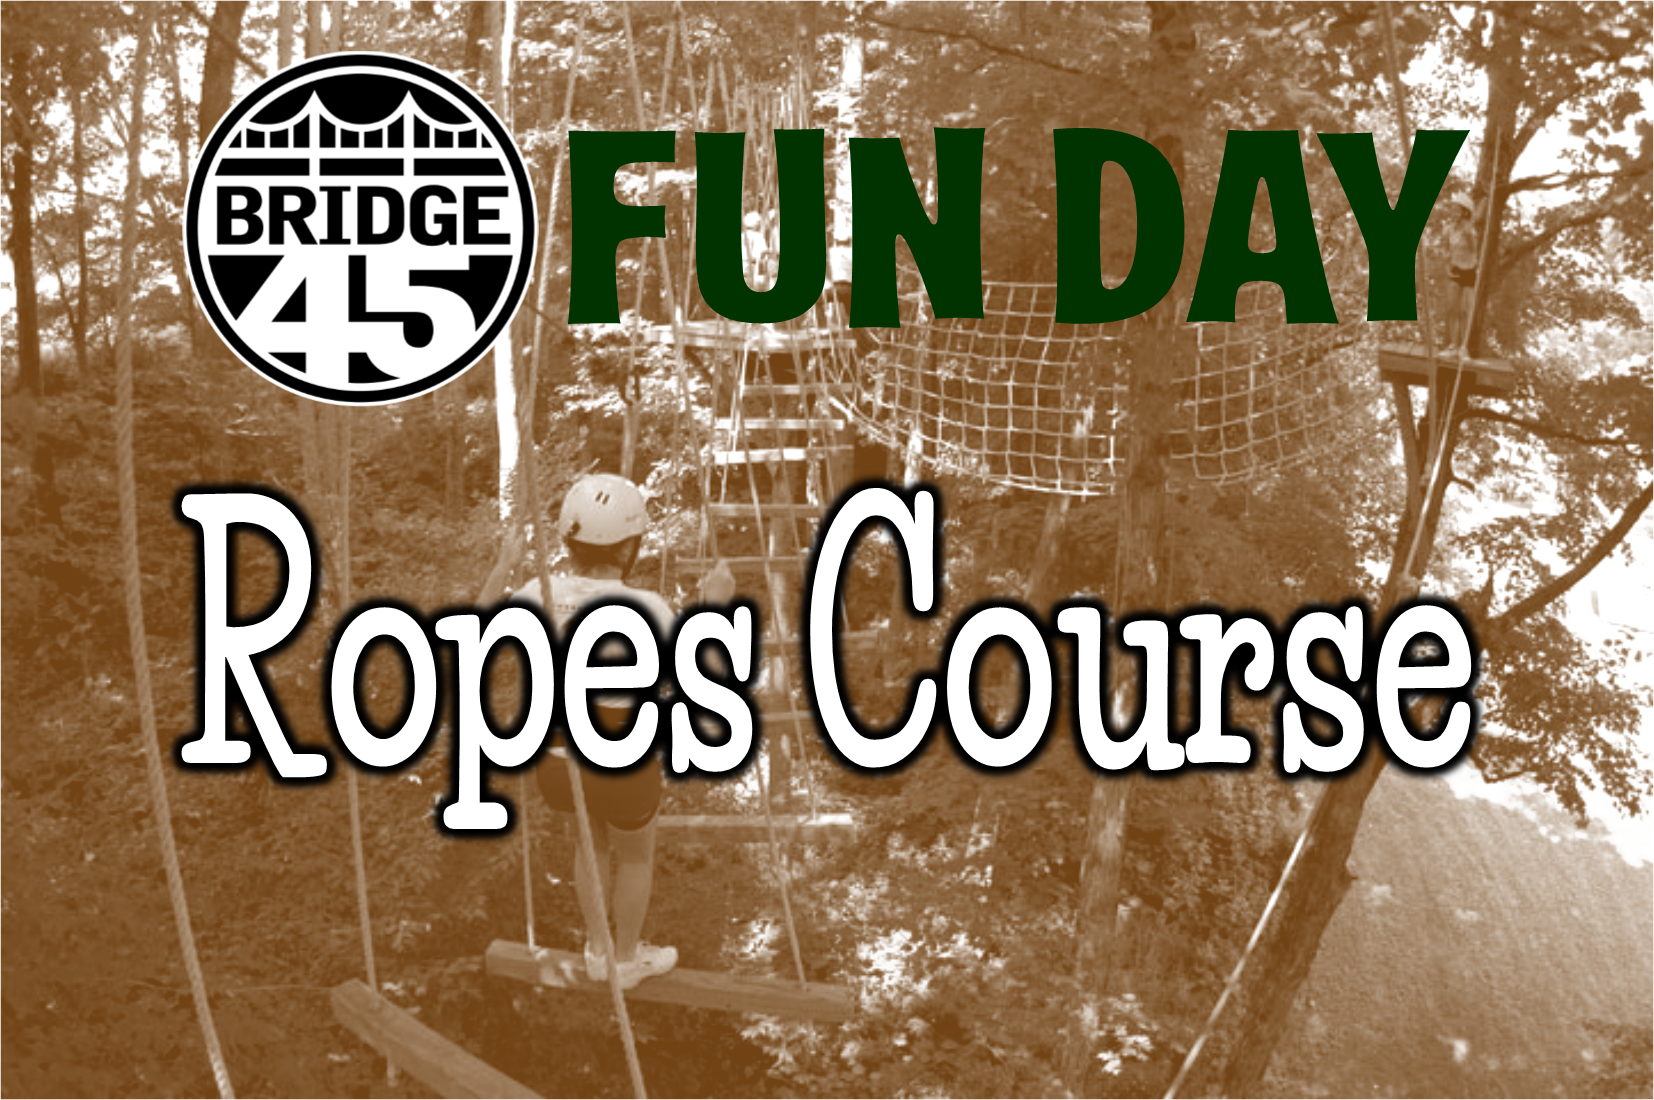 Ropes course reg logo